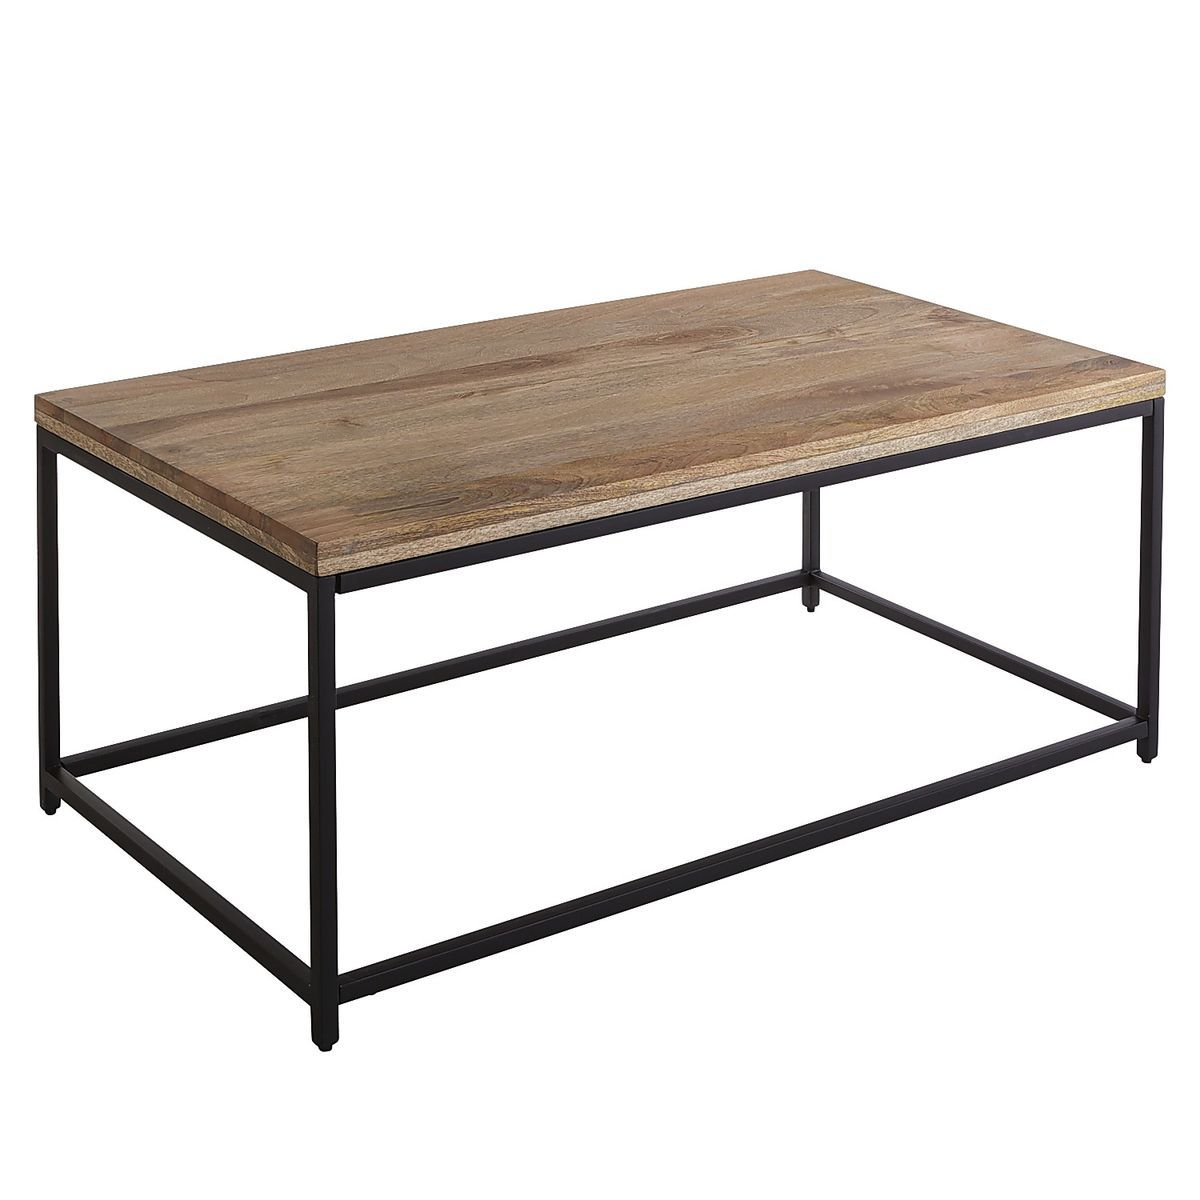 Takat Natural Mango Wood Coffee Table Coffee Table Wood Mango